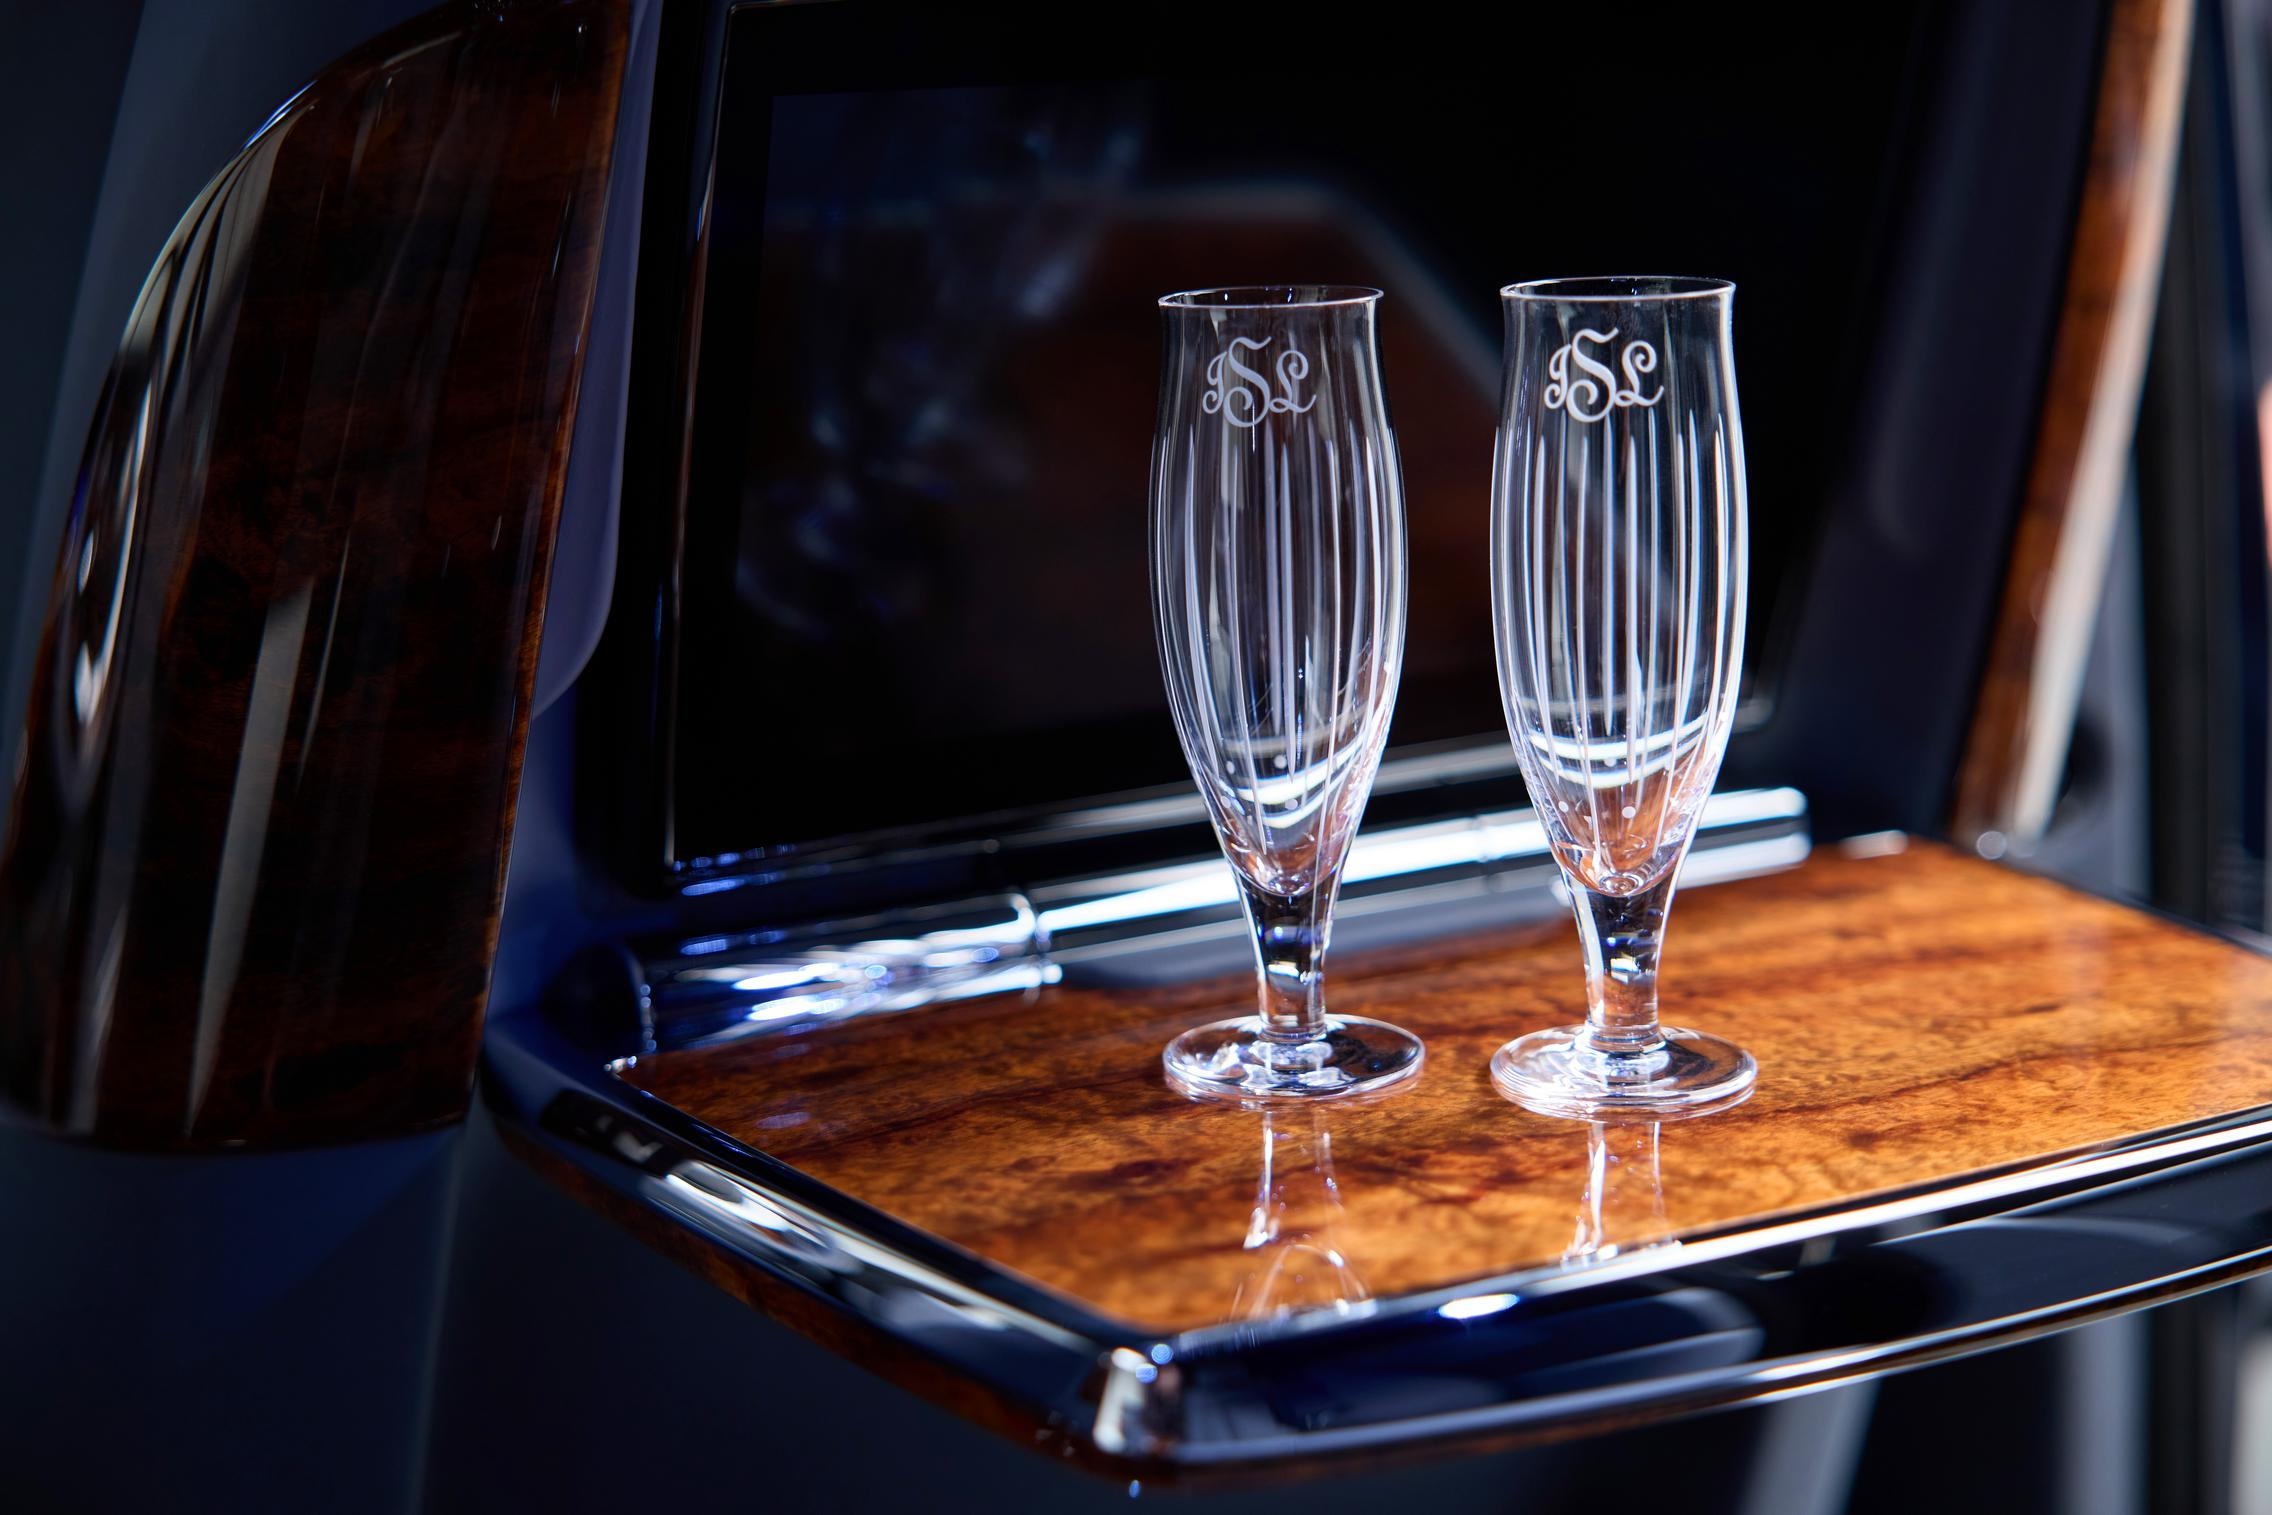 Rolls-Royce Phantom Glasses